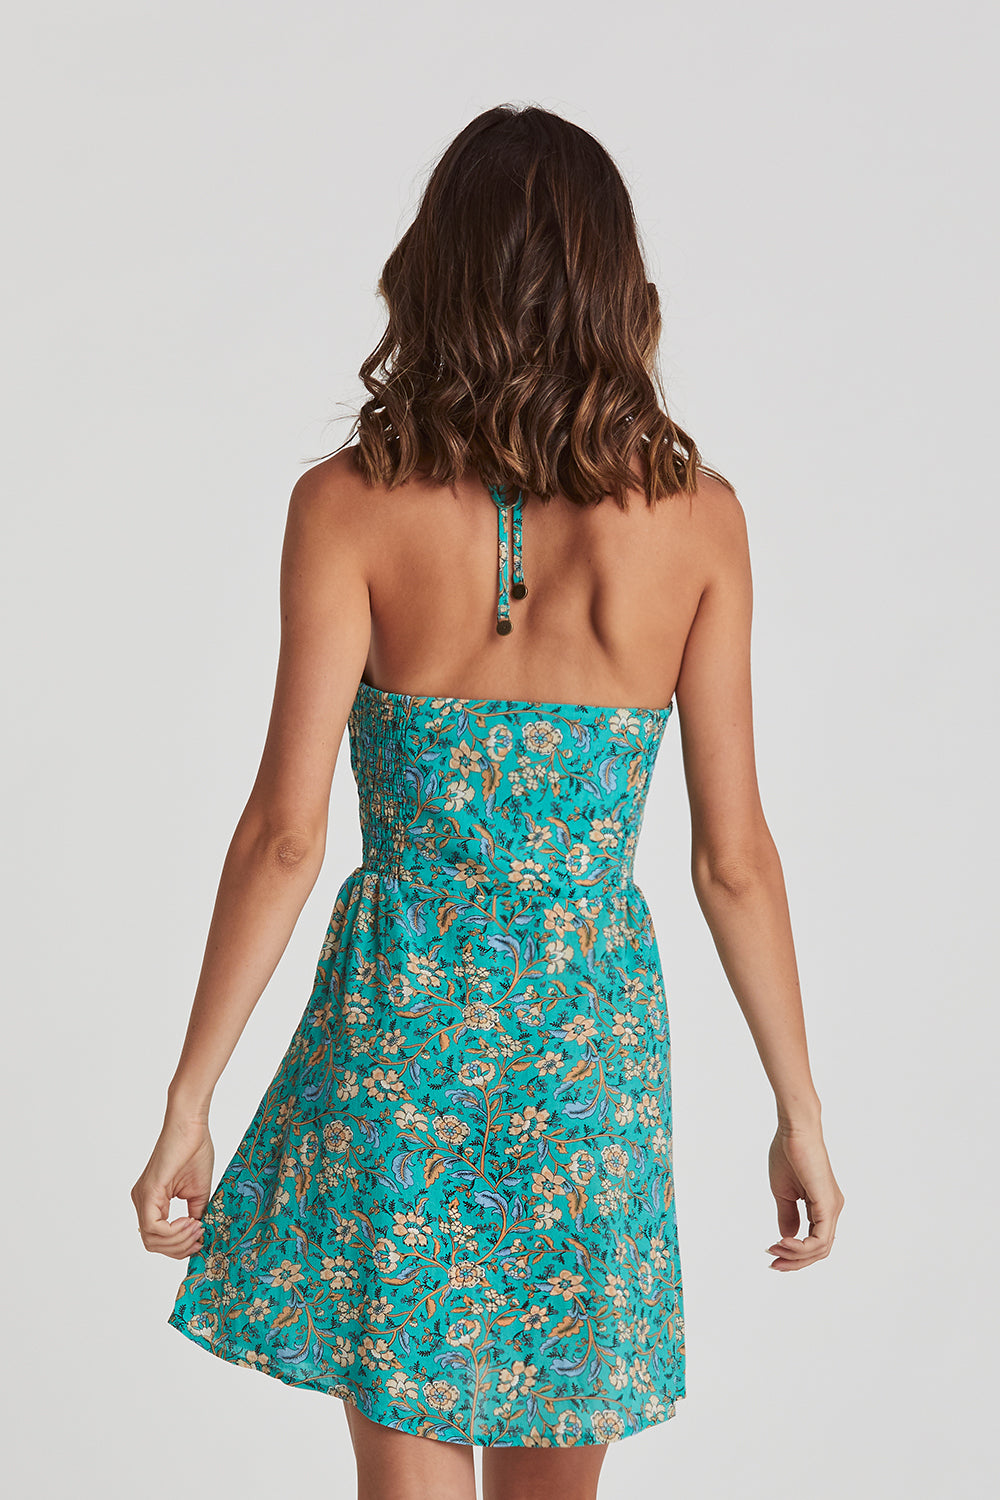 Daisy Chain Halter Dress in Poolside